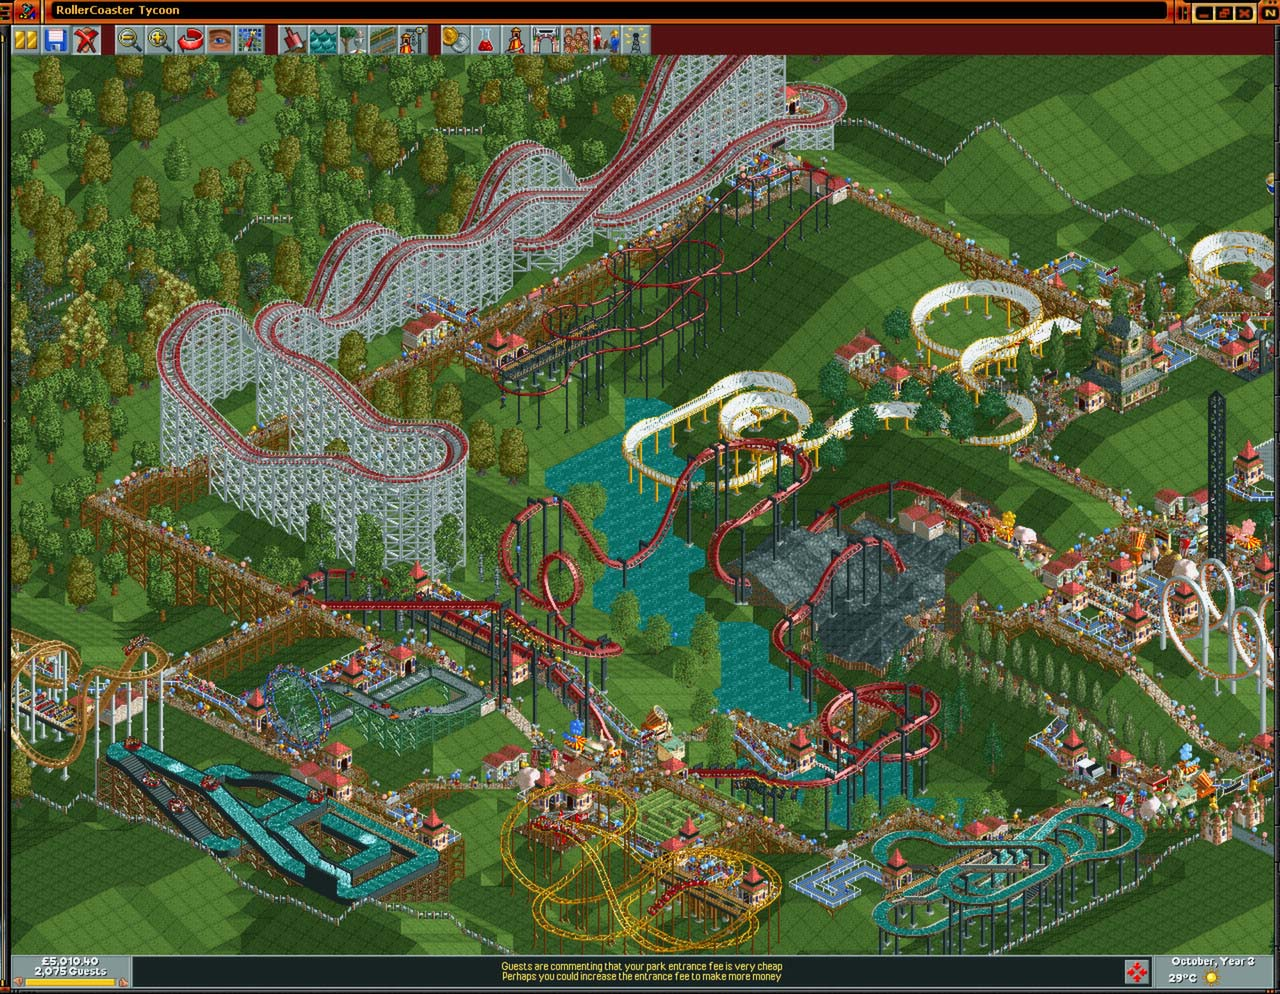 Roller coaster tycoon nude patch nackt girl